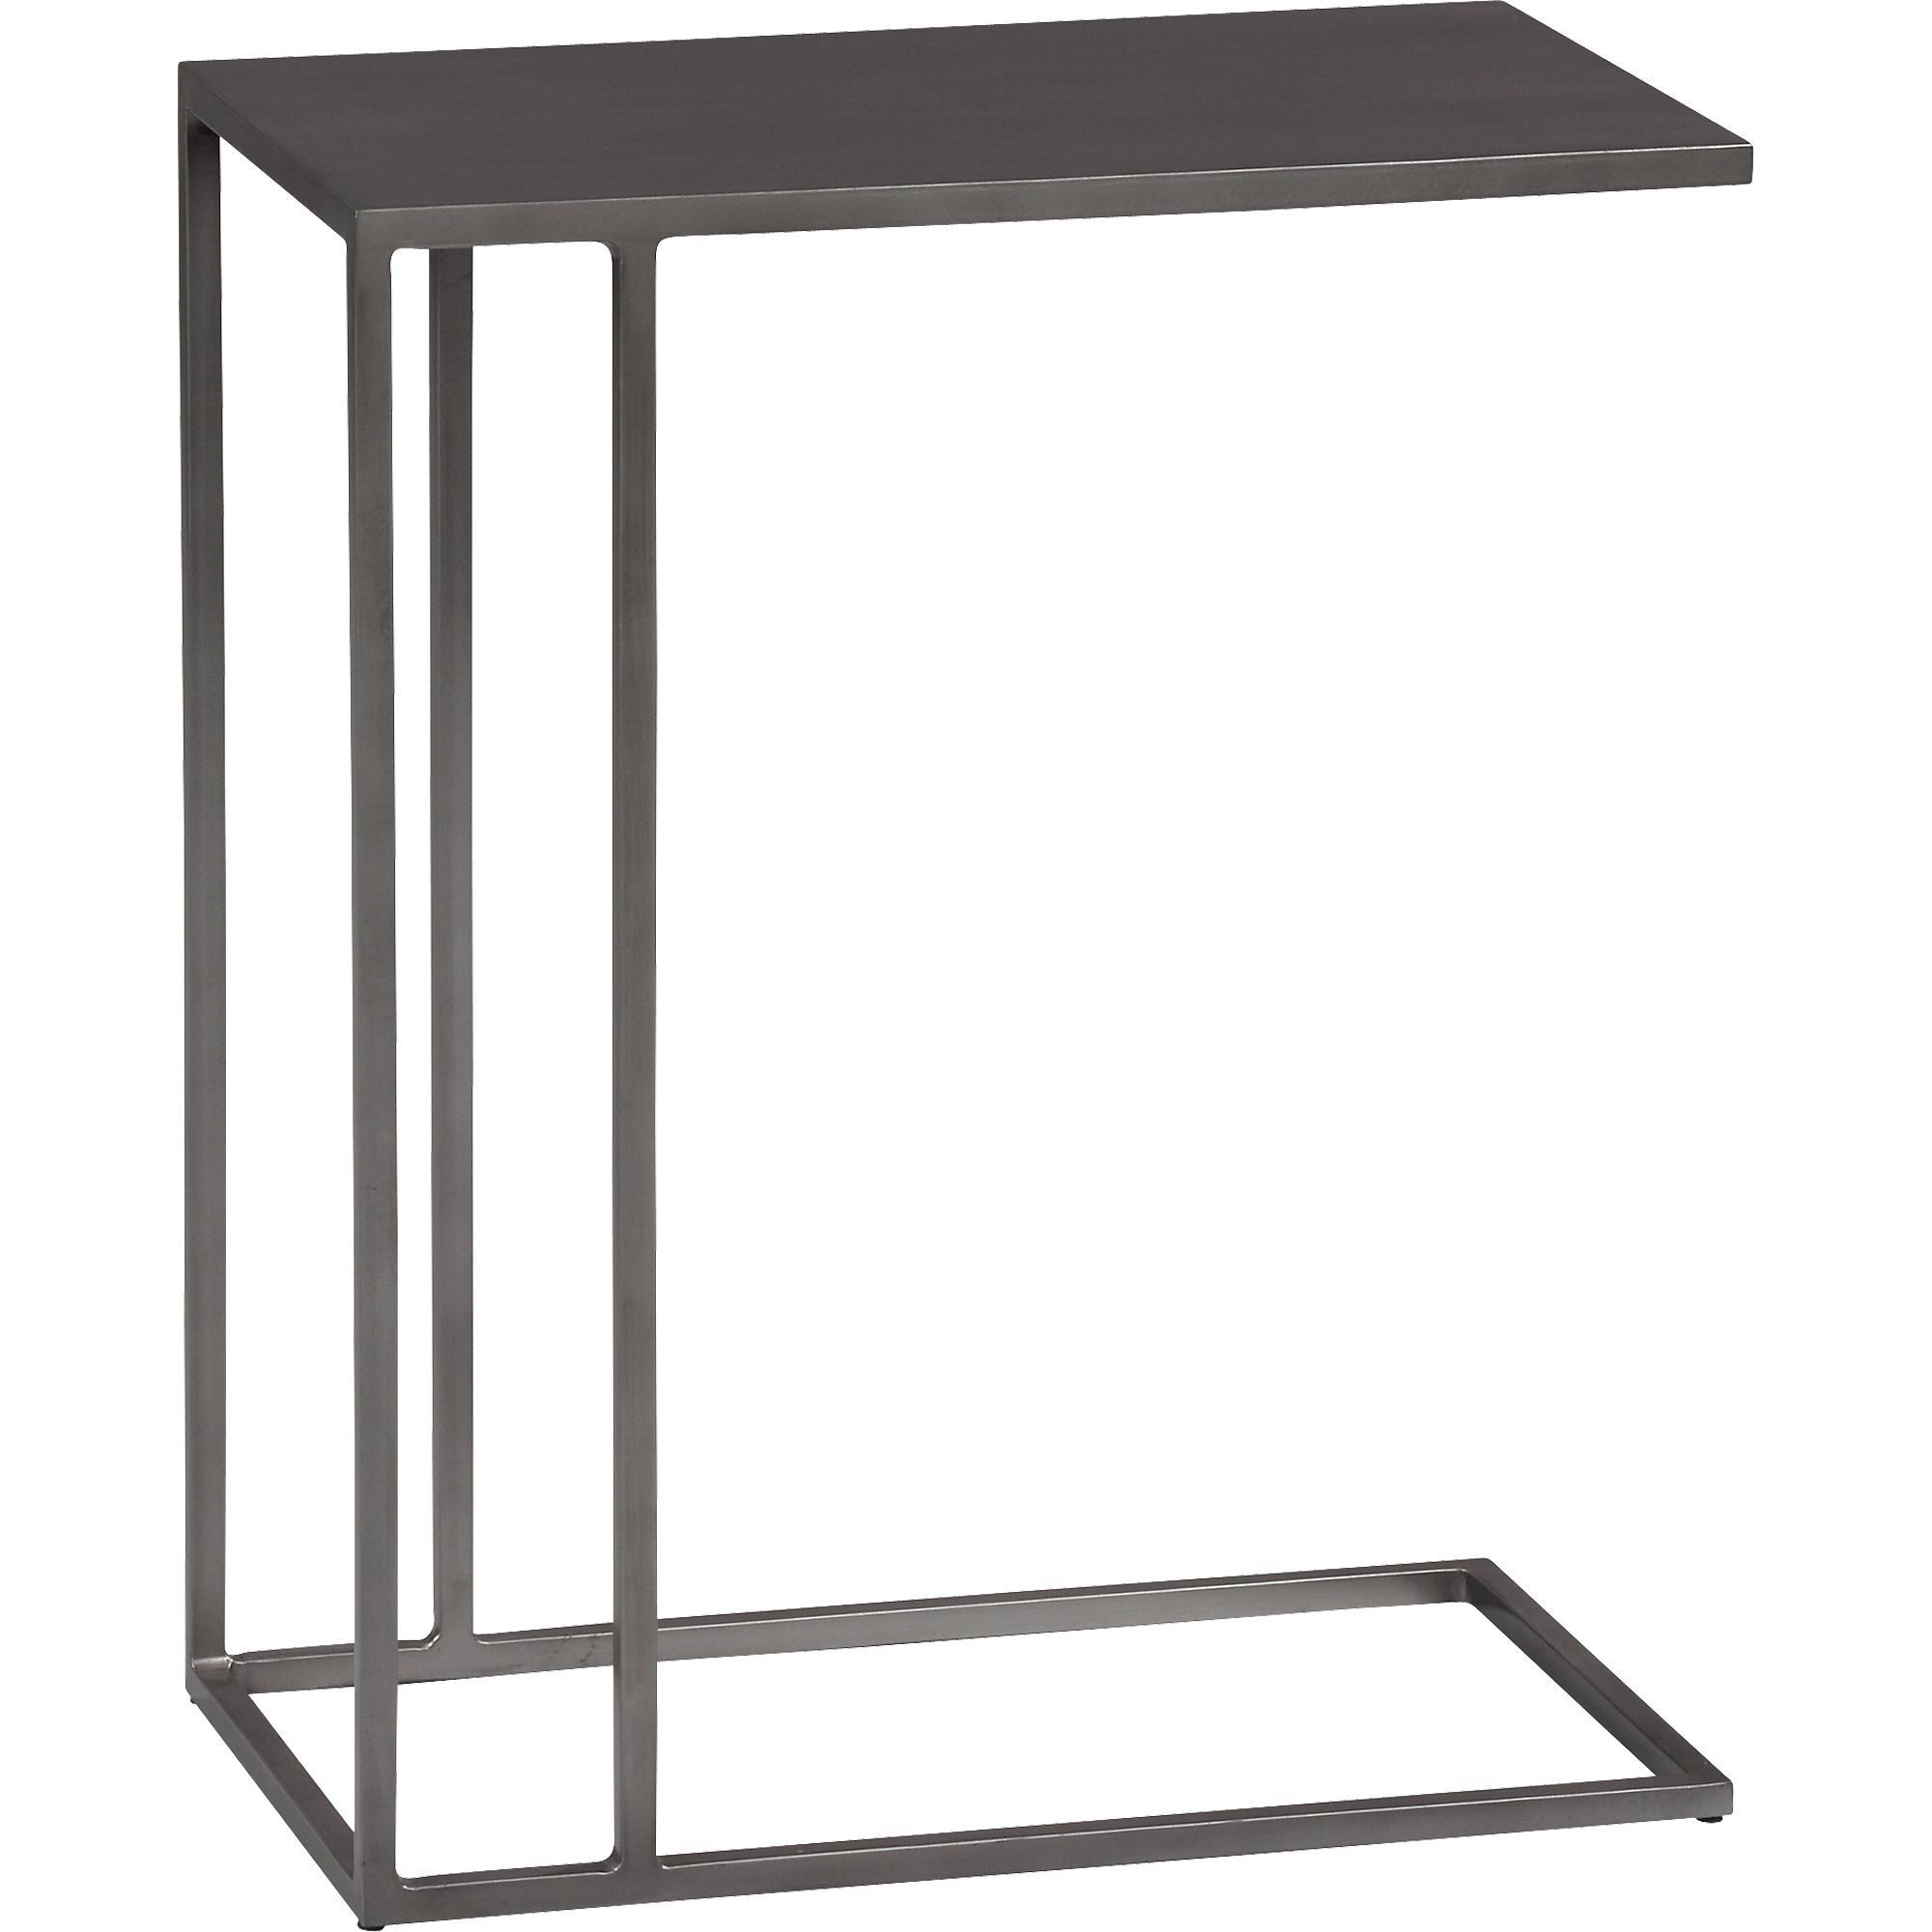 Foundry C Table In Accent Tables CB Stuff For The Apartment - Cb2 sofa table